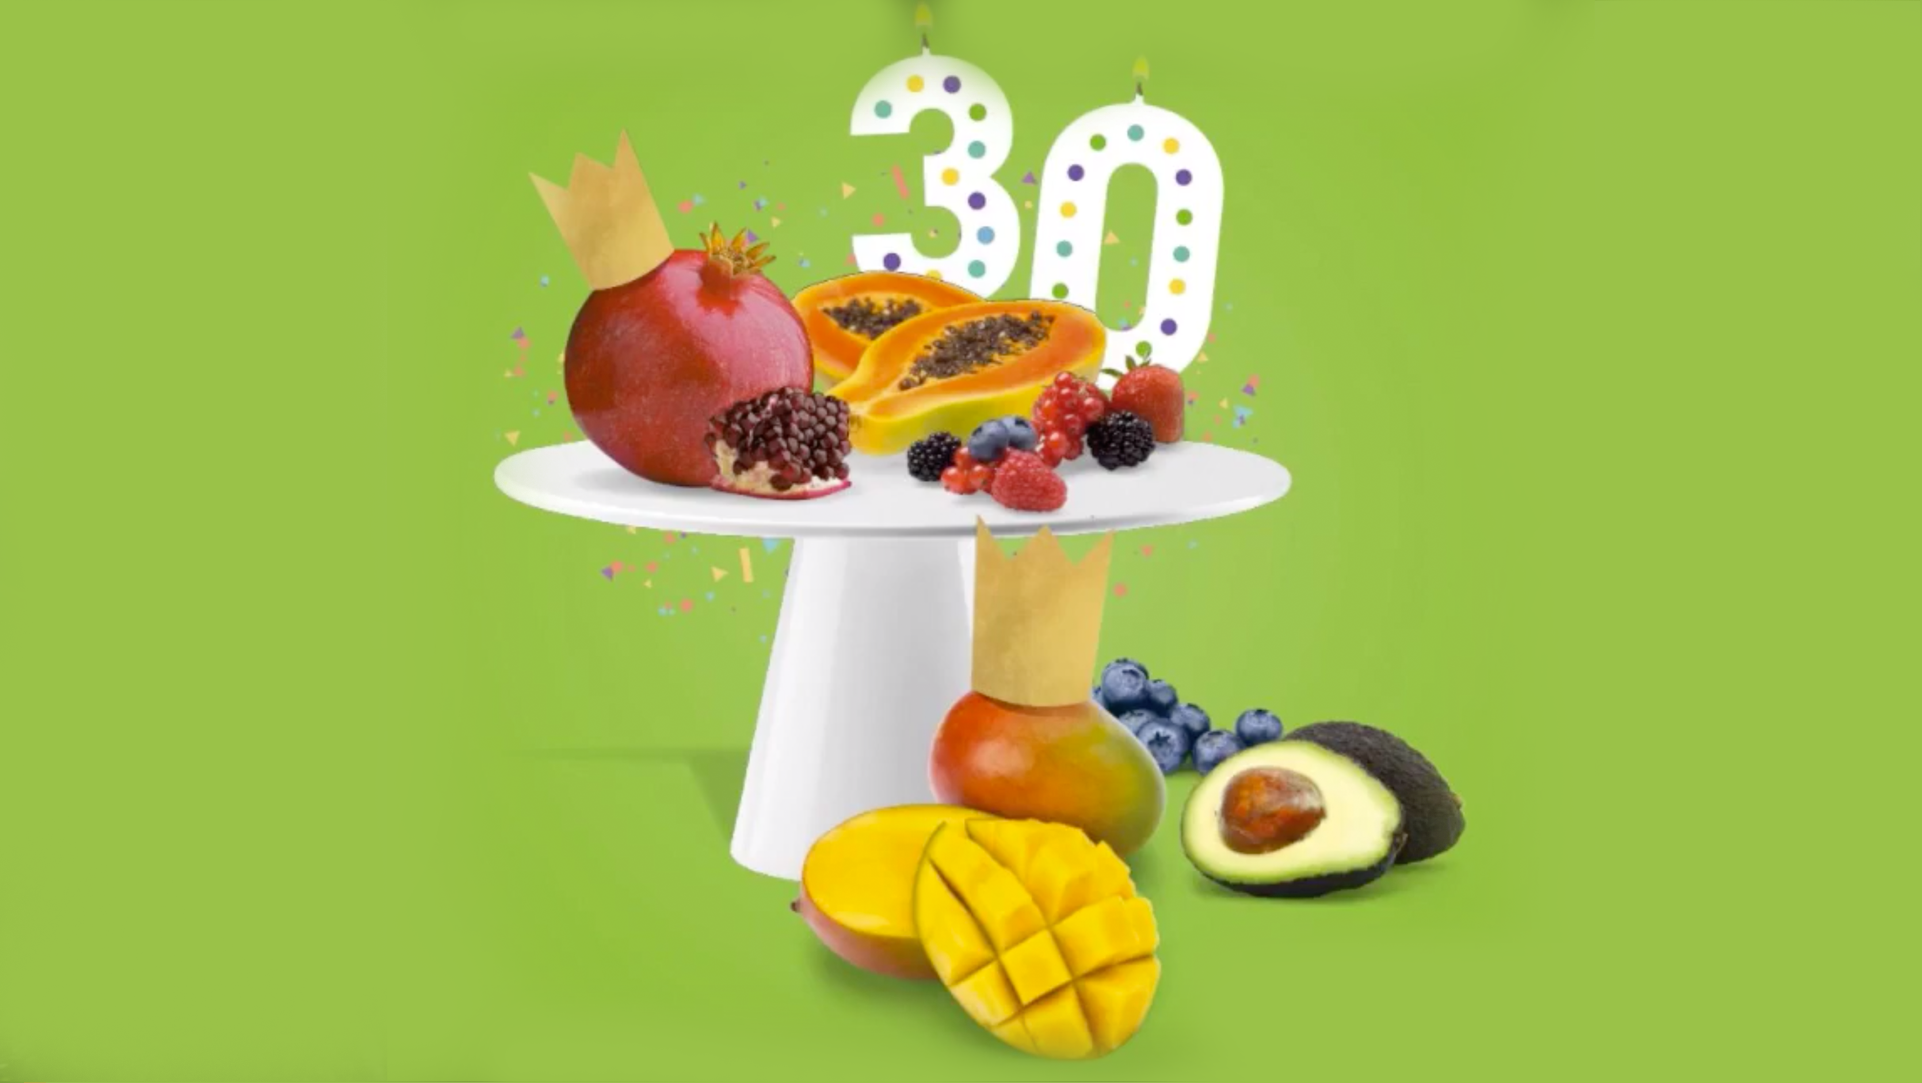 Special Fruit 30 years